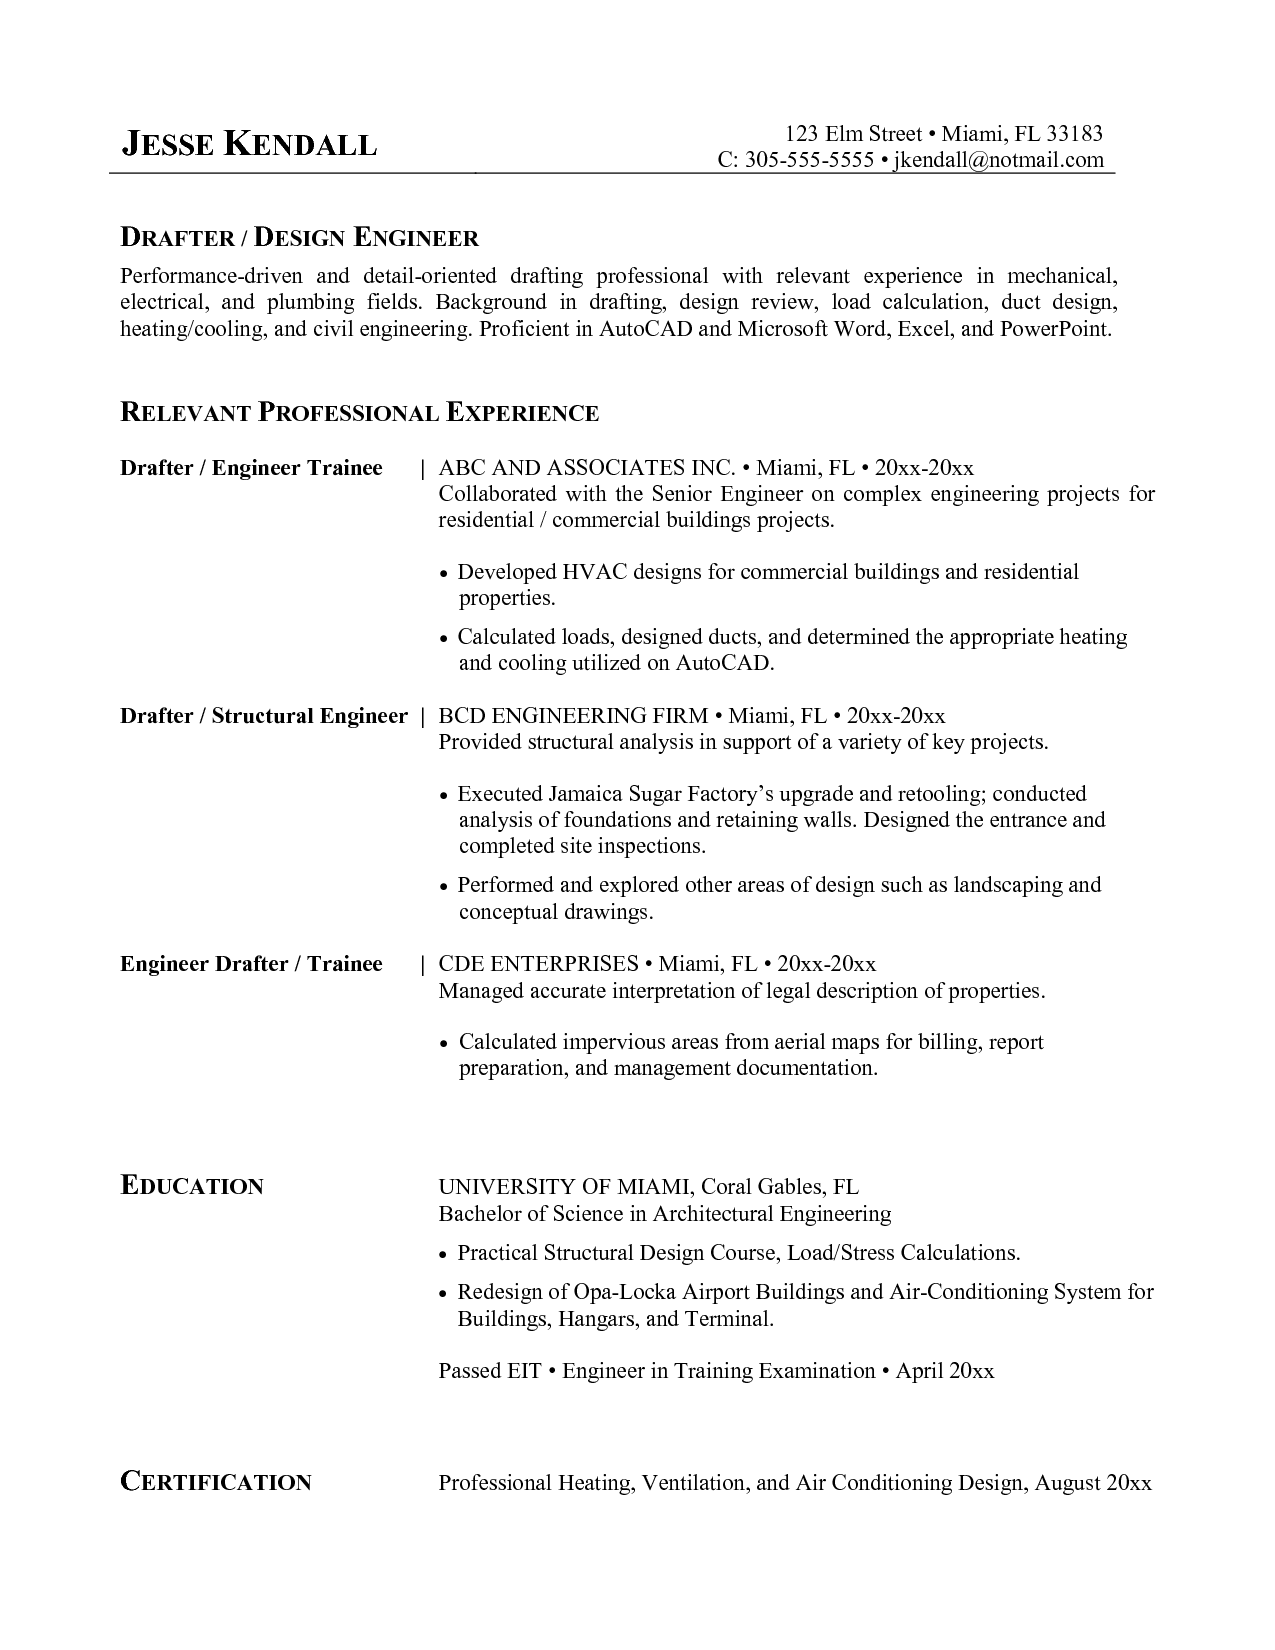 American History Multnomah County Library good hvac resume Write